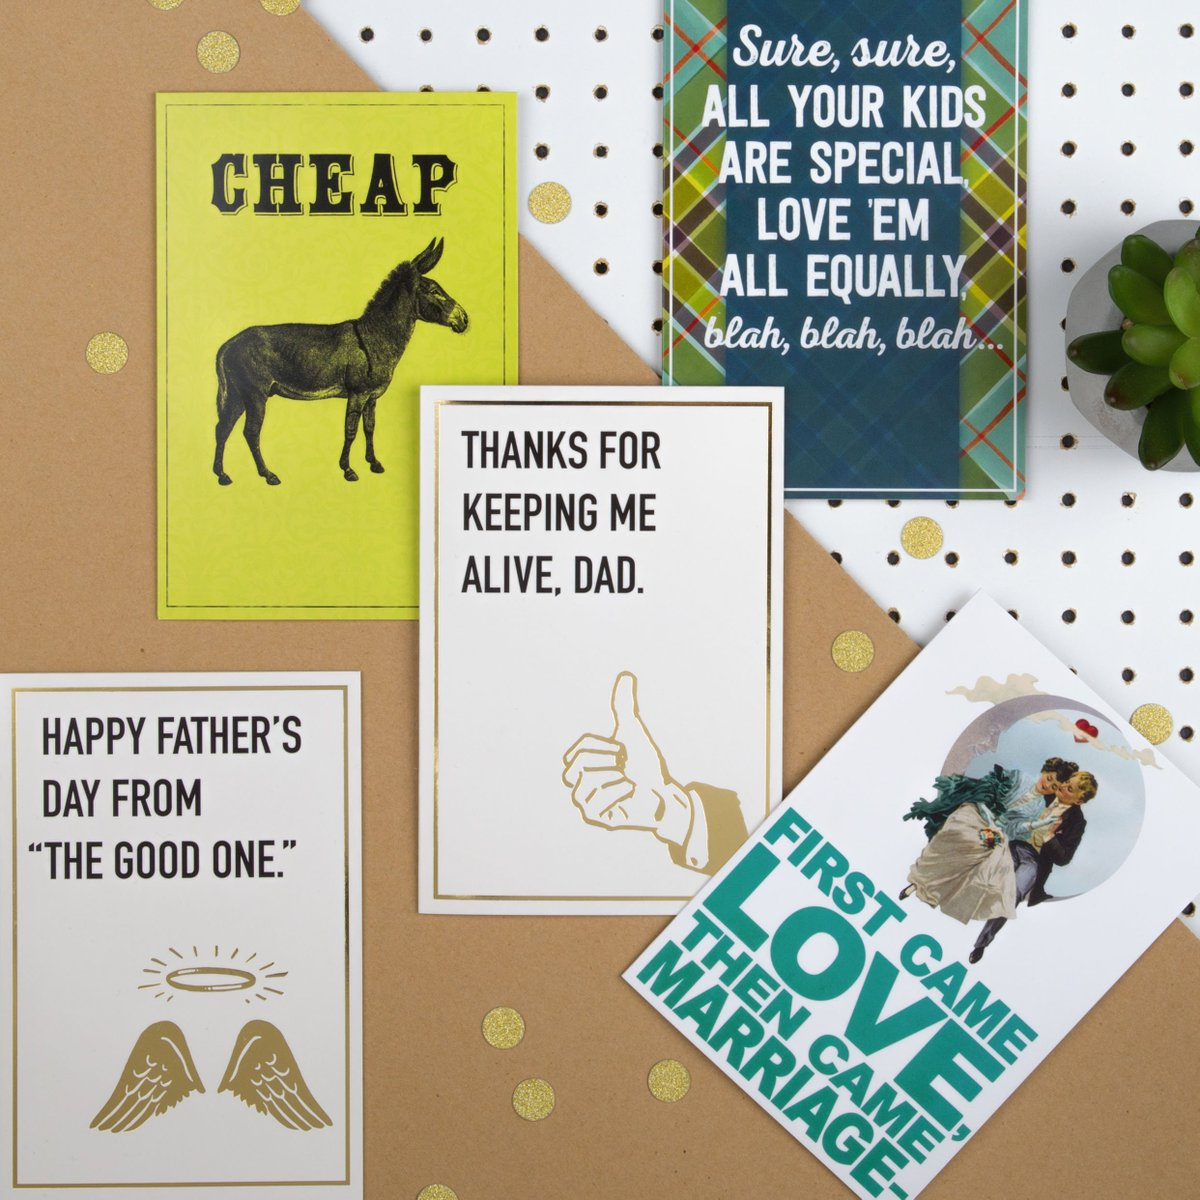 We don't often tell Dad jokes here at Hallmark… but when we do, we really make him laugh!😉 See for yourself by choosing one of the hilarious cards available on our online store this Father's Day https://amzn.to/2Ip3WXt